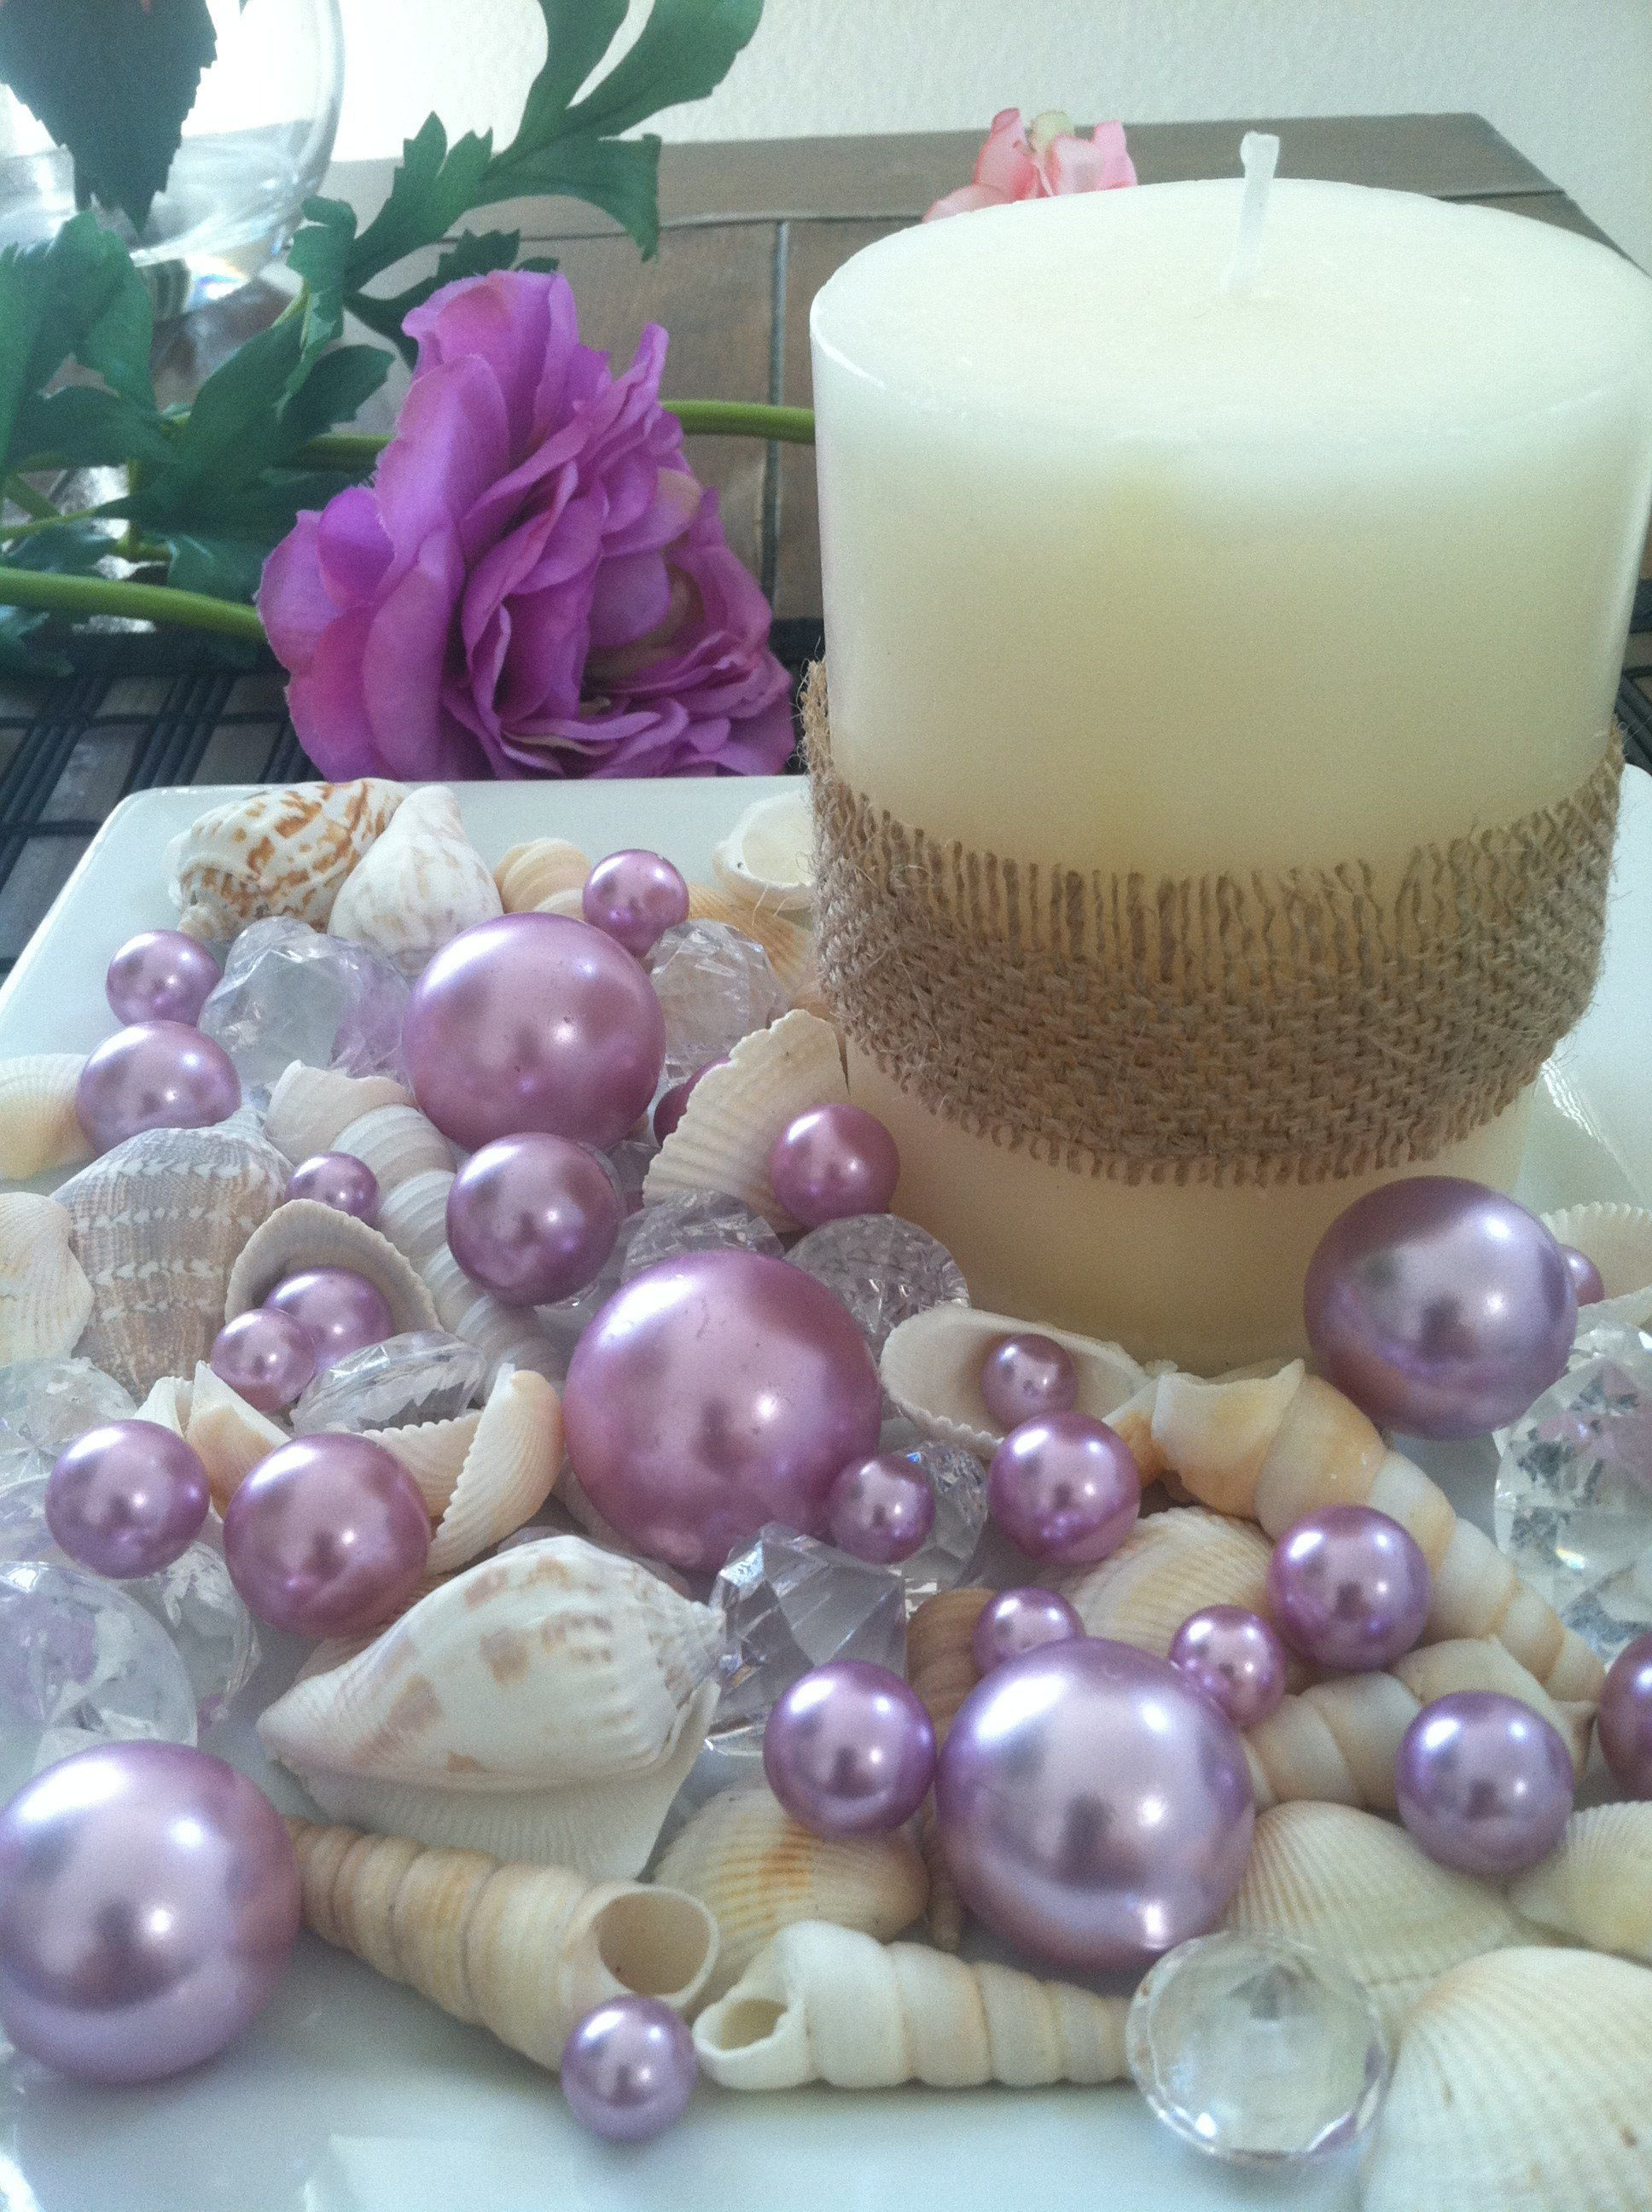 fruit vase fillers of 27 fall vase fillers the weekly world with regard to mix seashells lavendar pearls diamond vase fillers bowl fillers